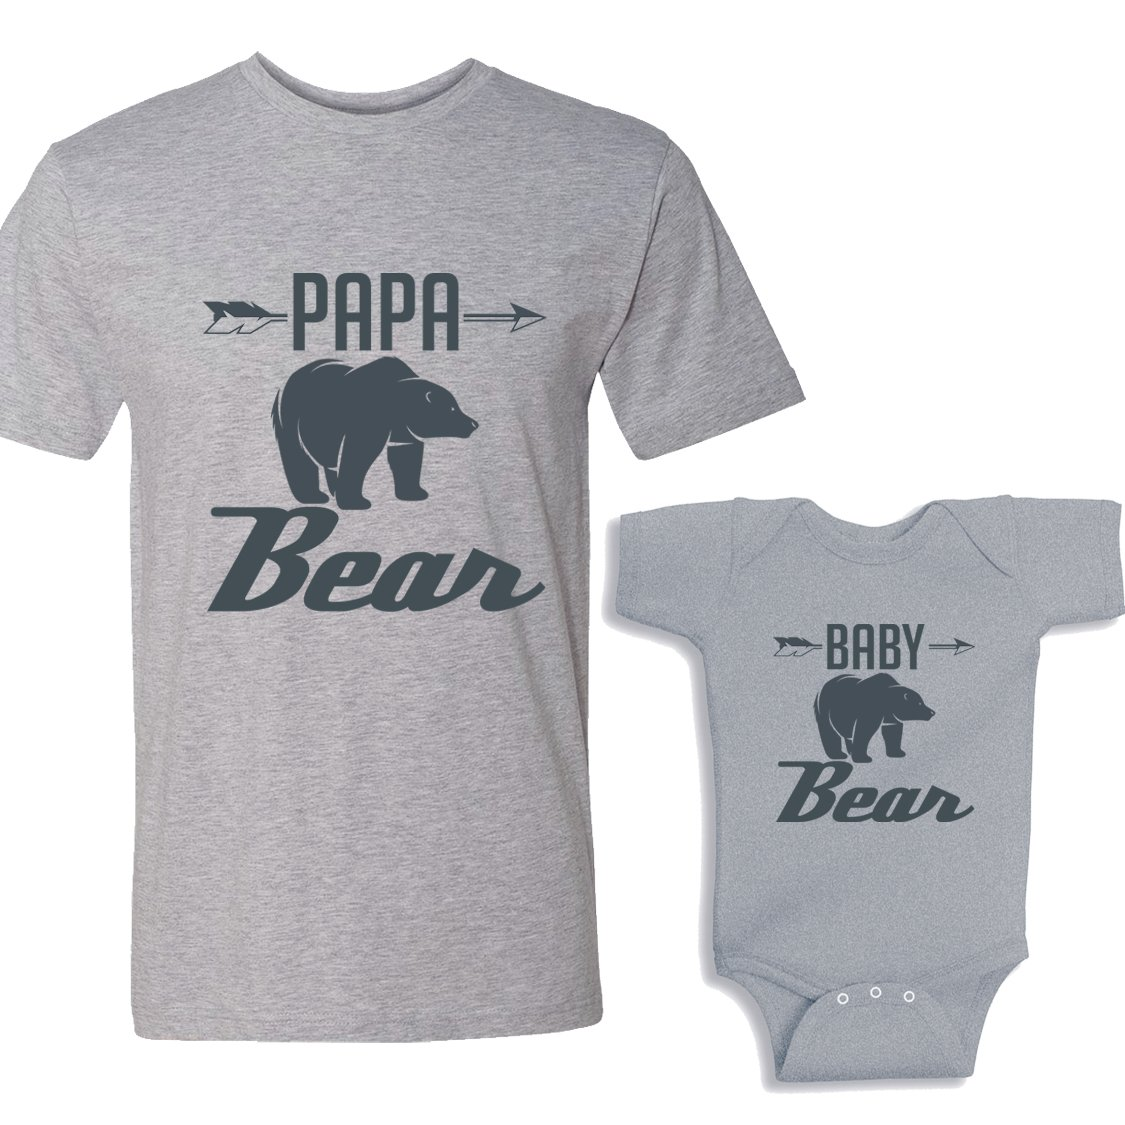 Baby Bear Charcoal Matching Shirt Set